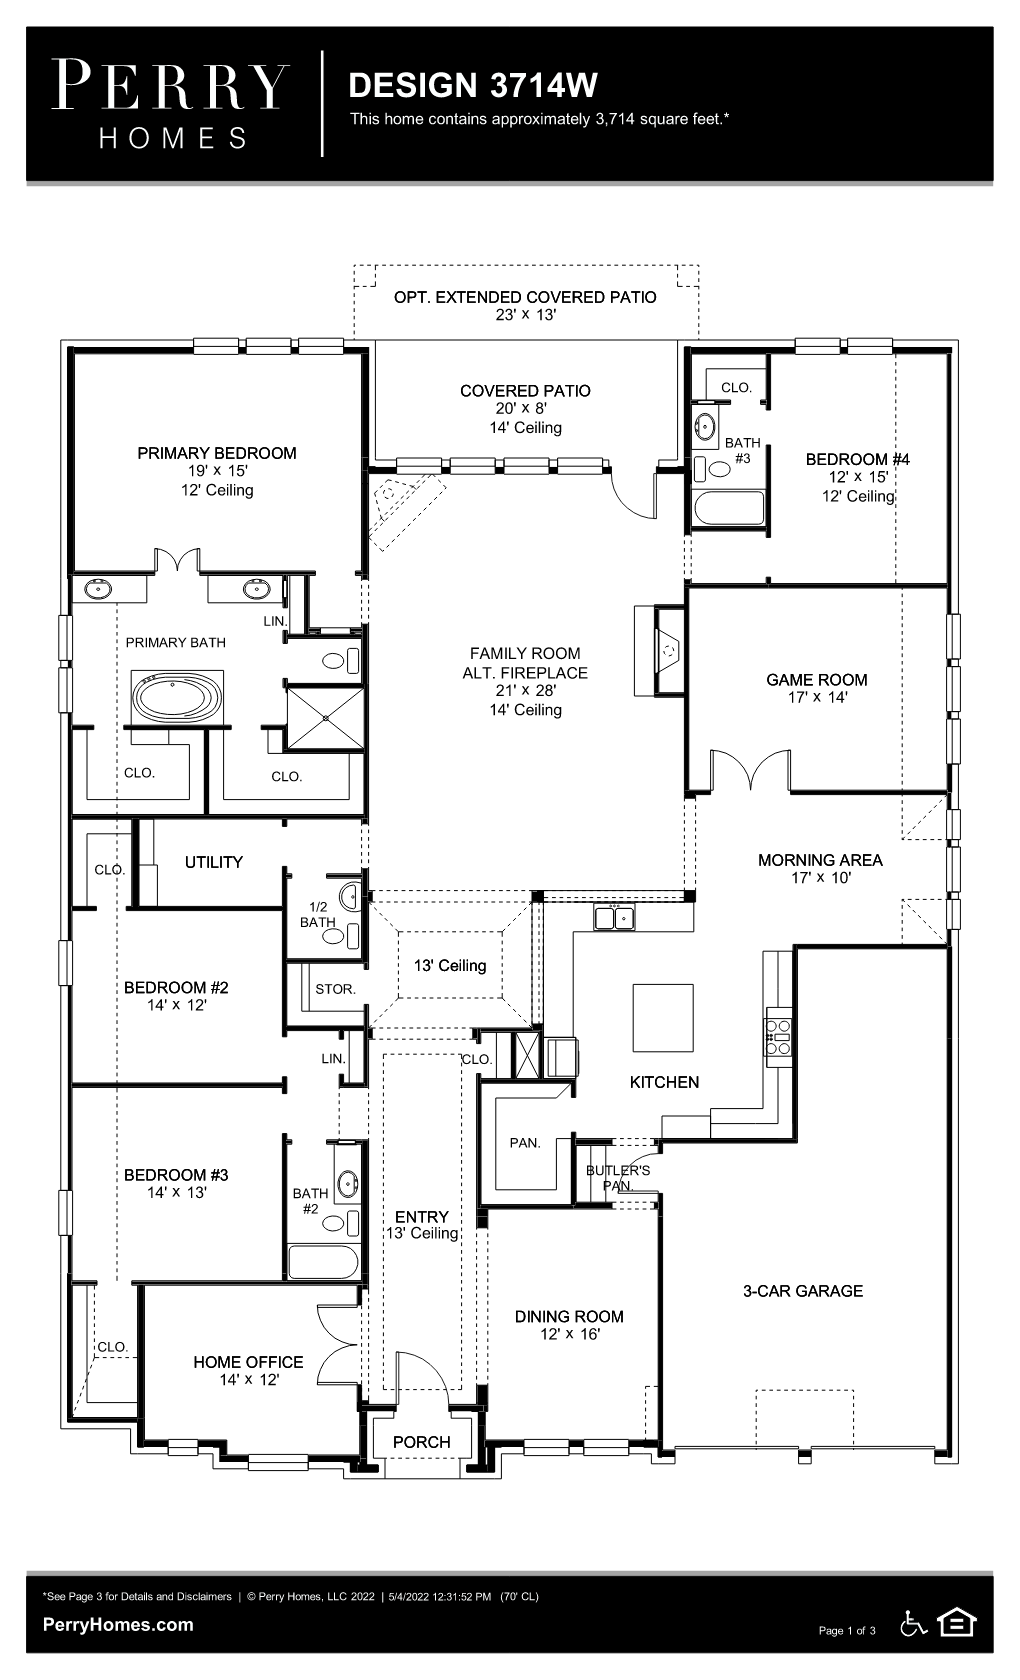 Floor Plan for 3714W